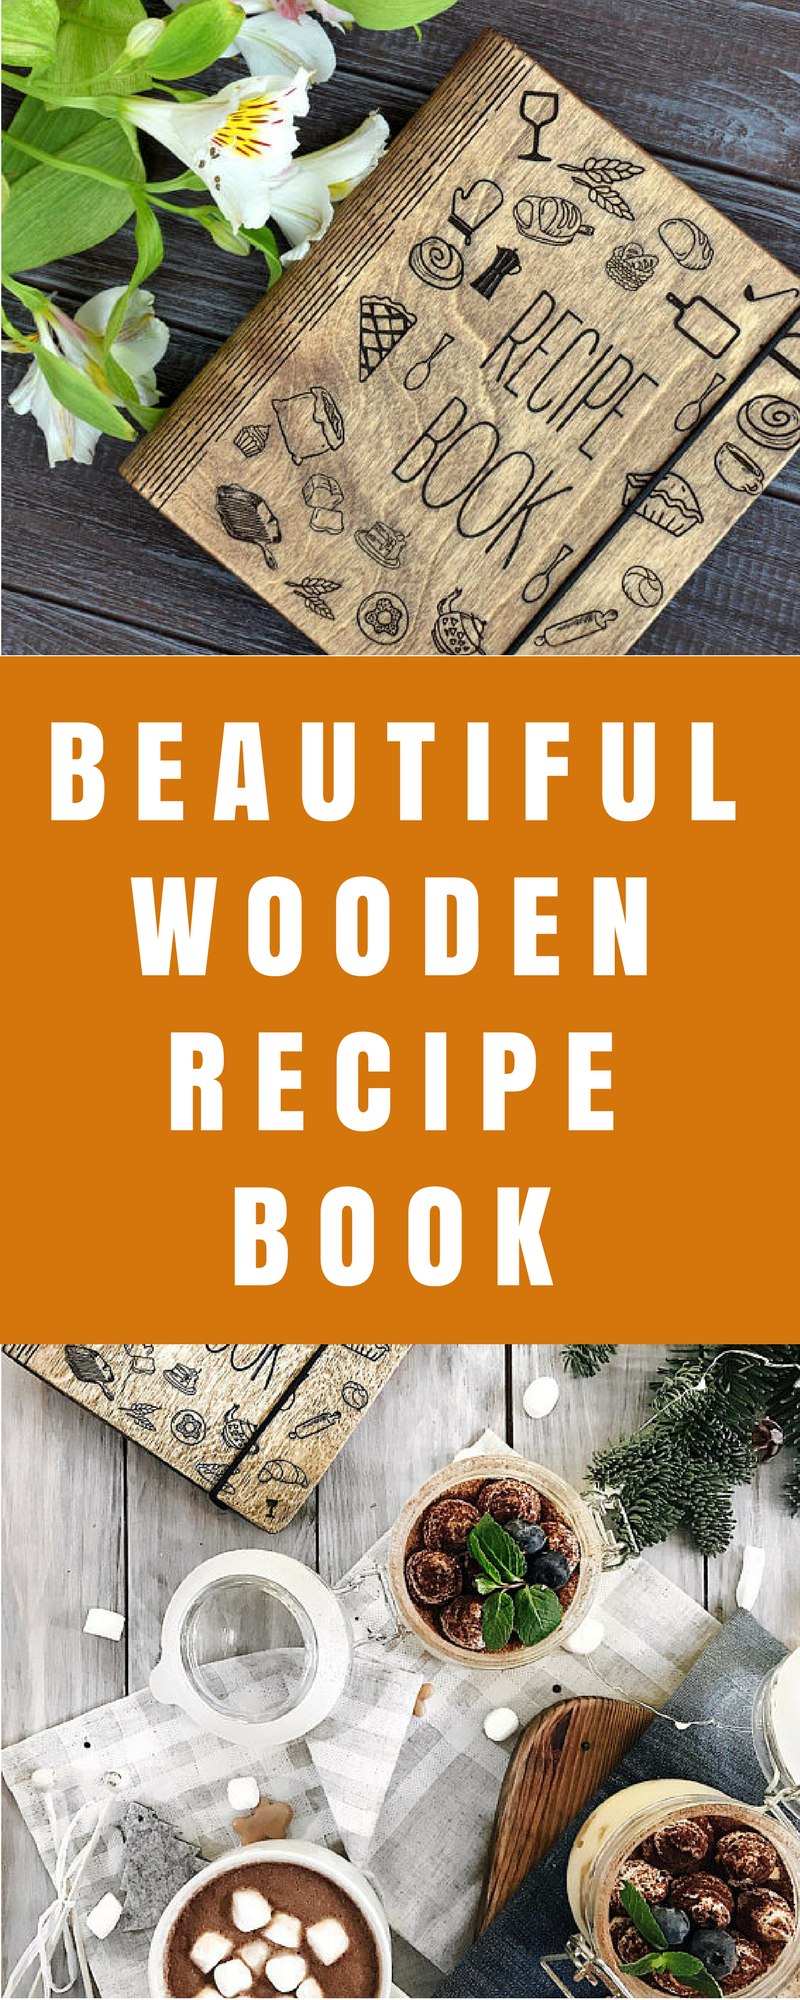 What an awesome gift custom recipe book binder bridal shower gift food what an awesome gift custom recipe book binder bridal shower gift wooden notebook personalized gift forumfinder Image collections